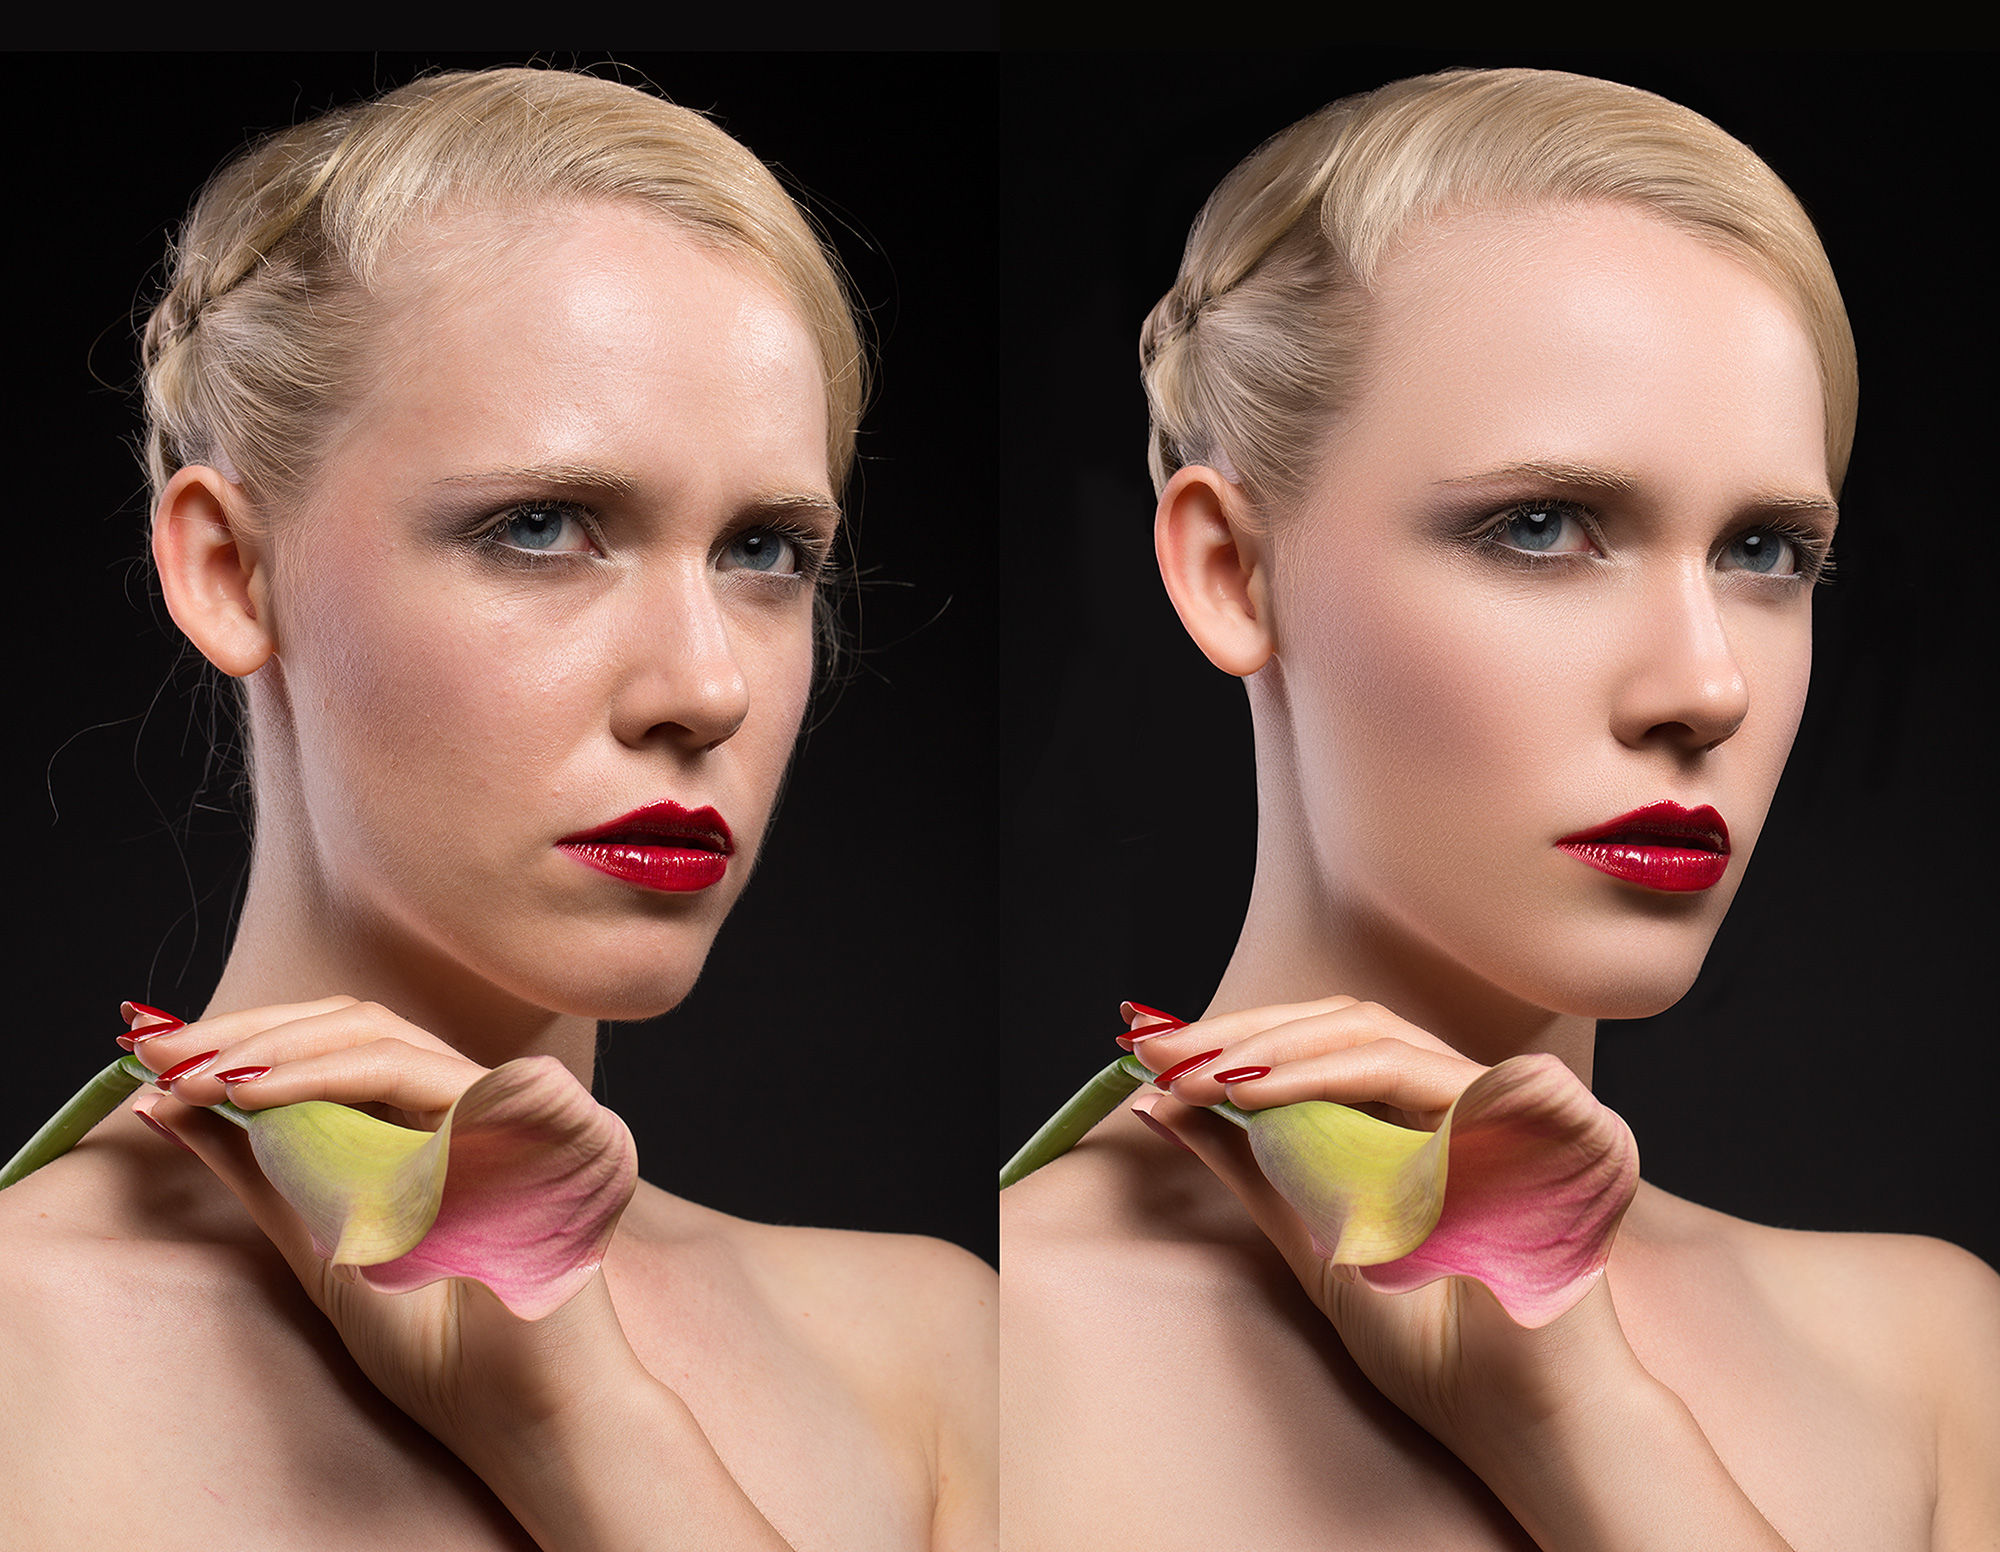 Professionally edit retouch any photo image to the highest standard